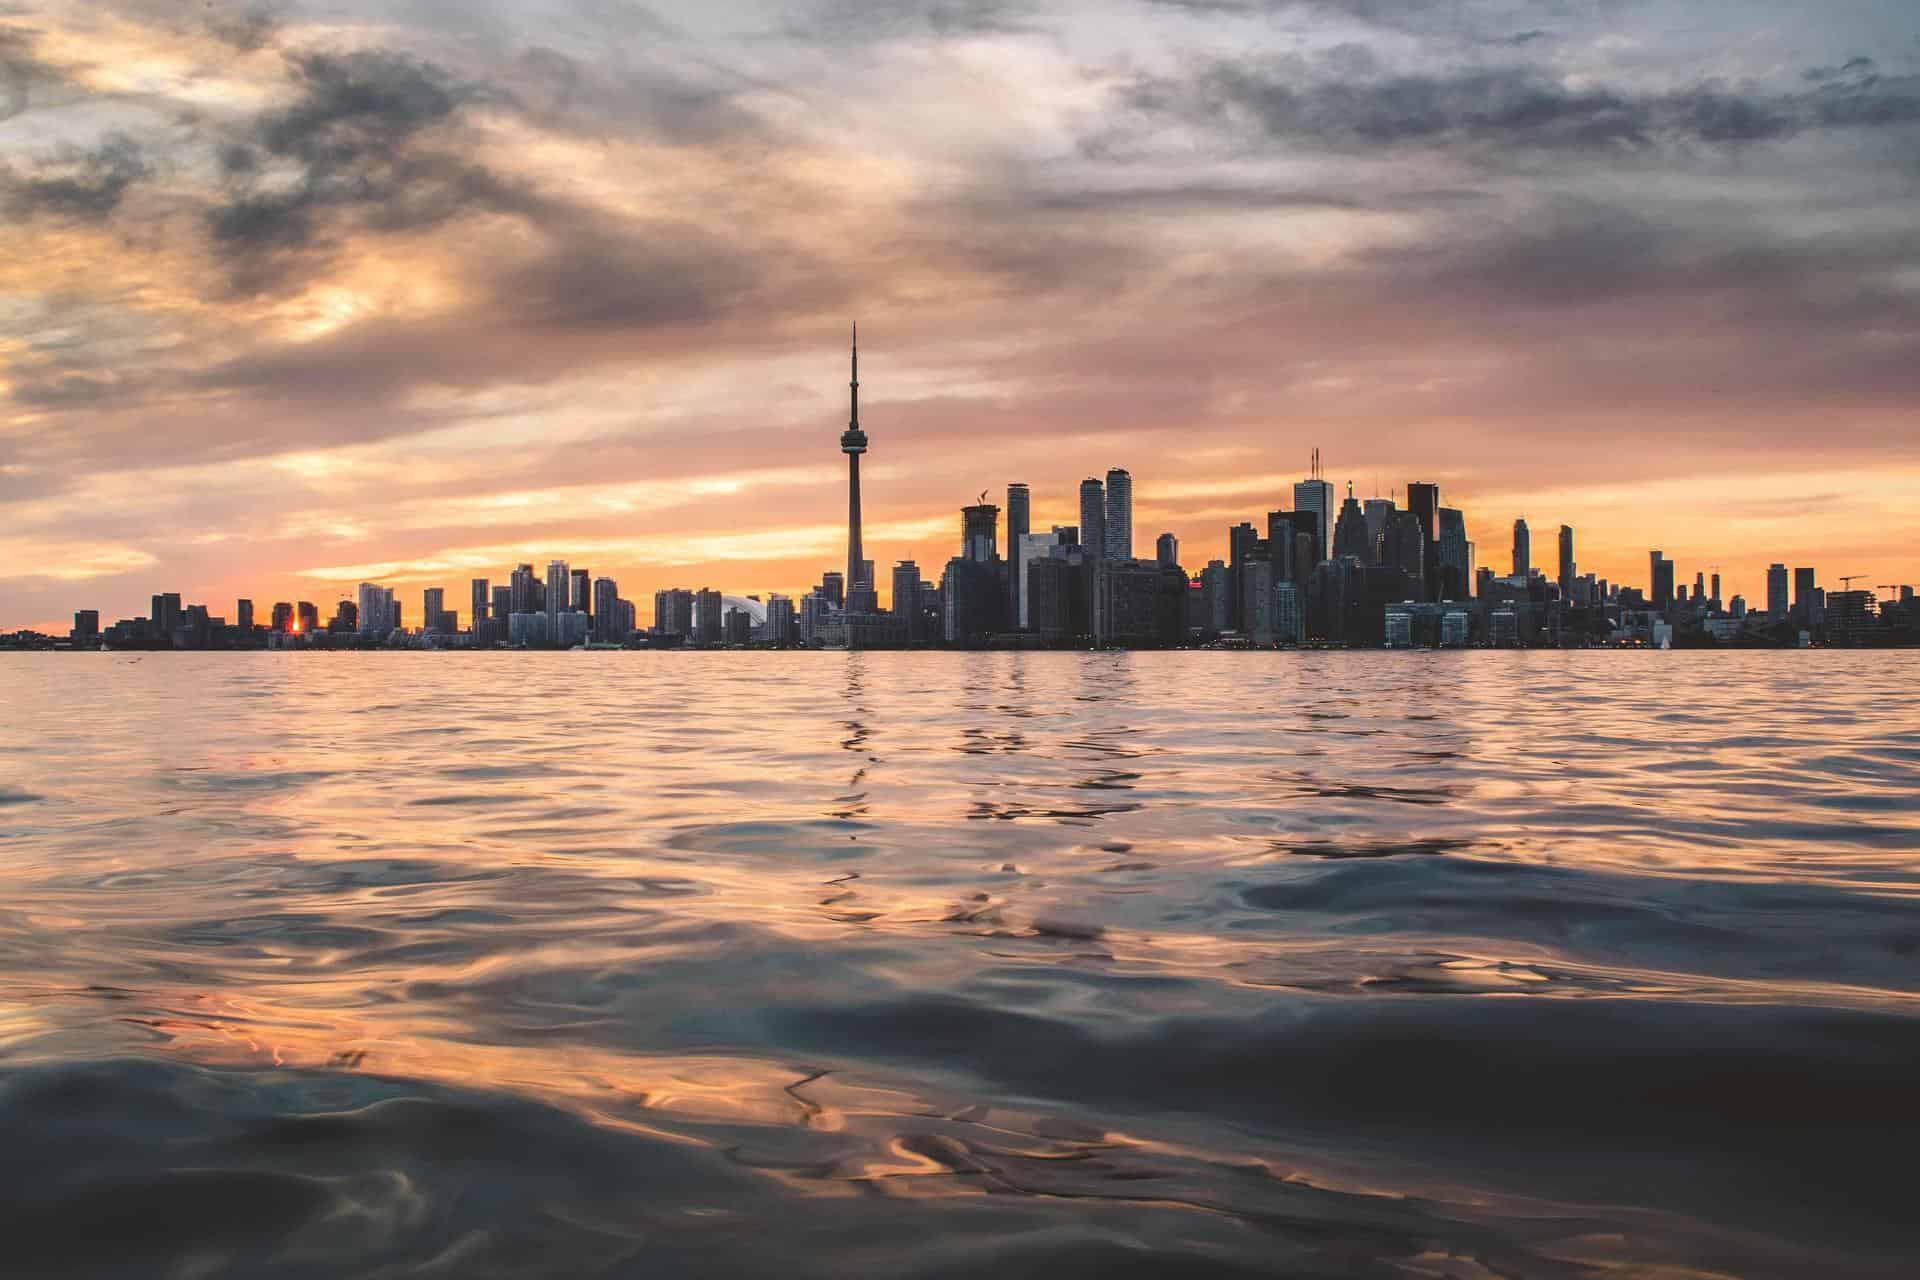 Toronto skyline at sunset, picture taken from the water